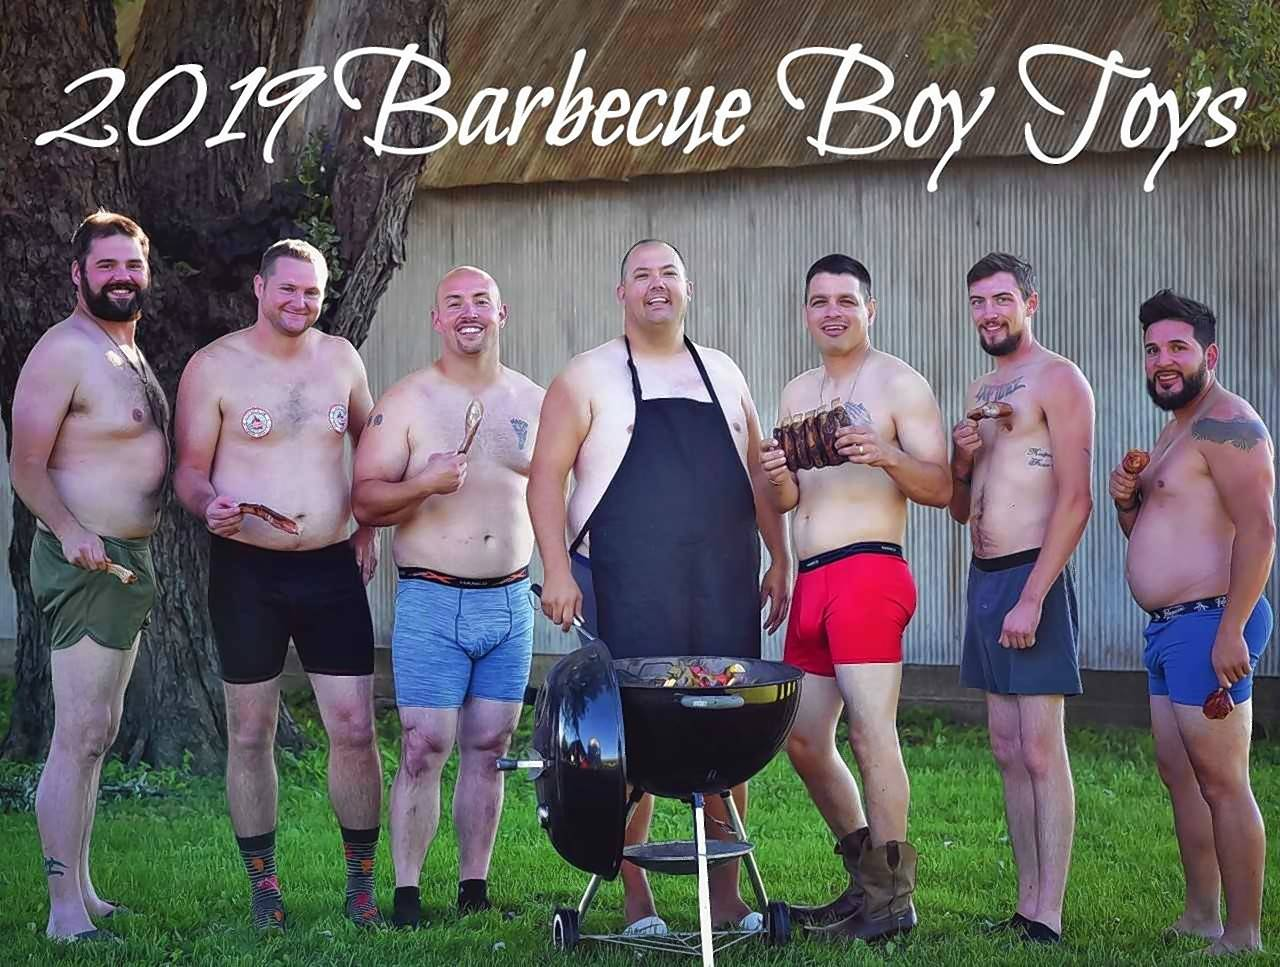 "Who doesn't love ""guys with dad bods eating barbecue food while in boudoir poses?"" says Steve Lulofs, president of Veterans Barbecue in Huntley, which is selling the calendar as a fundraiser for veterans groups."